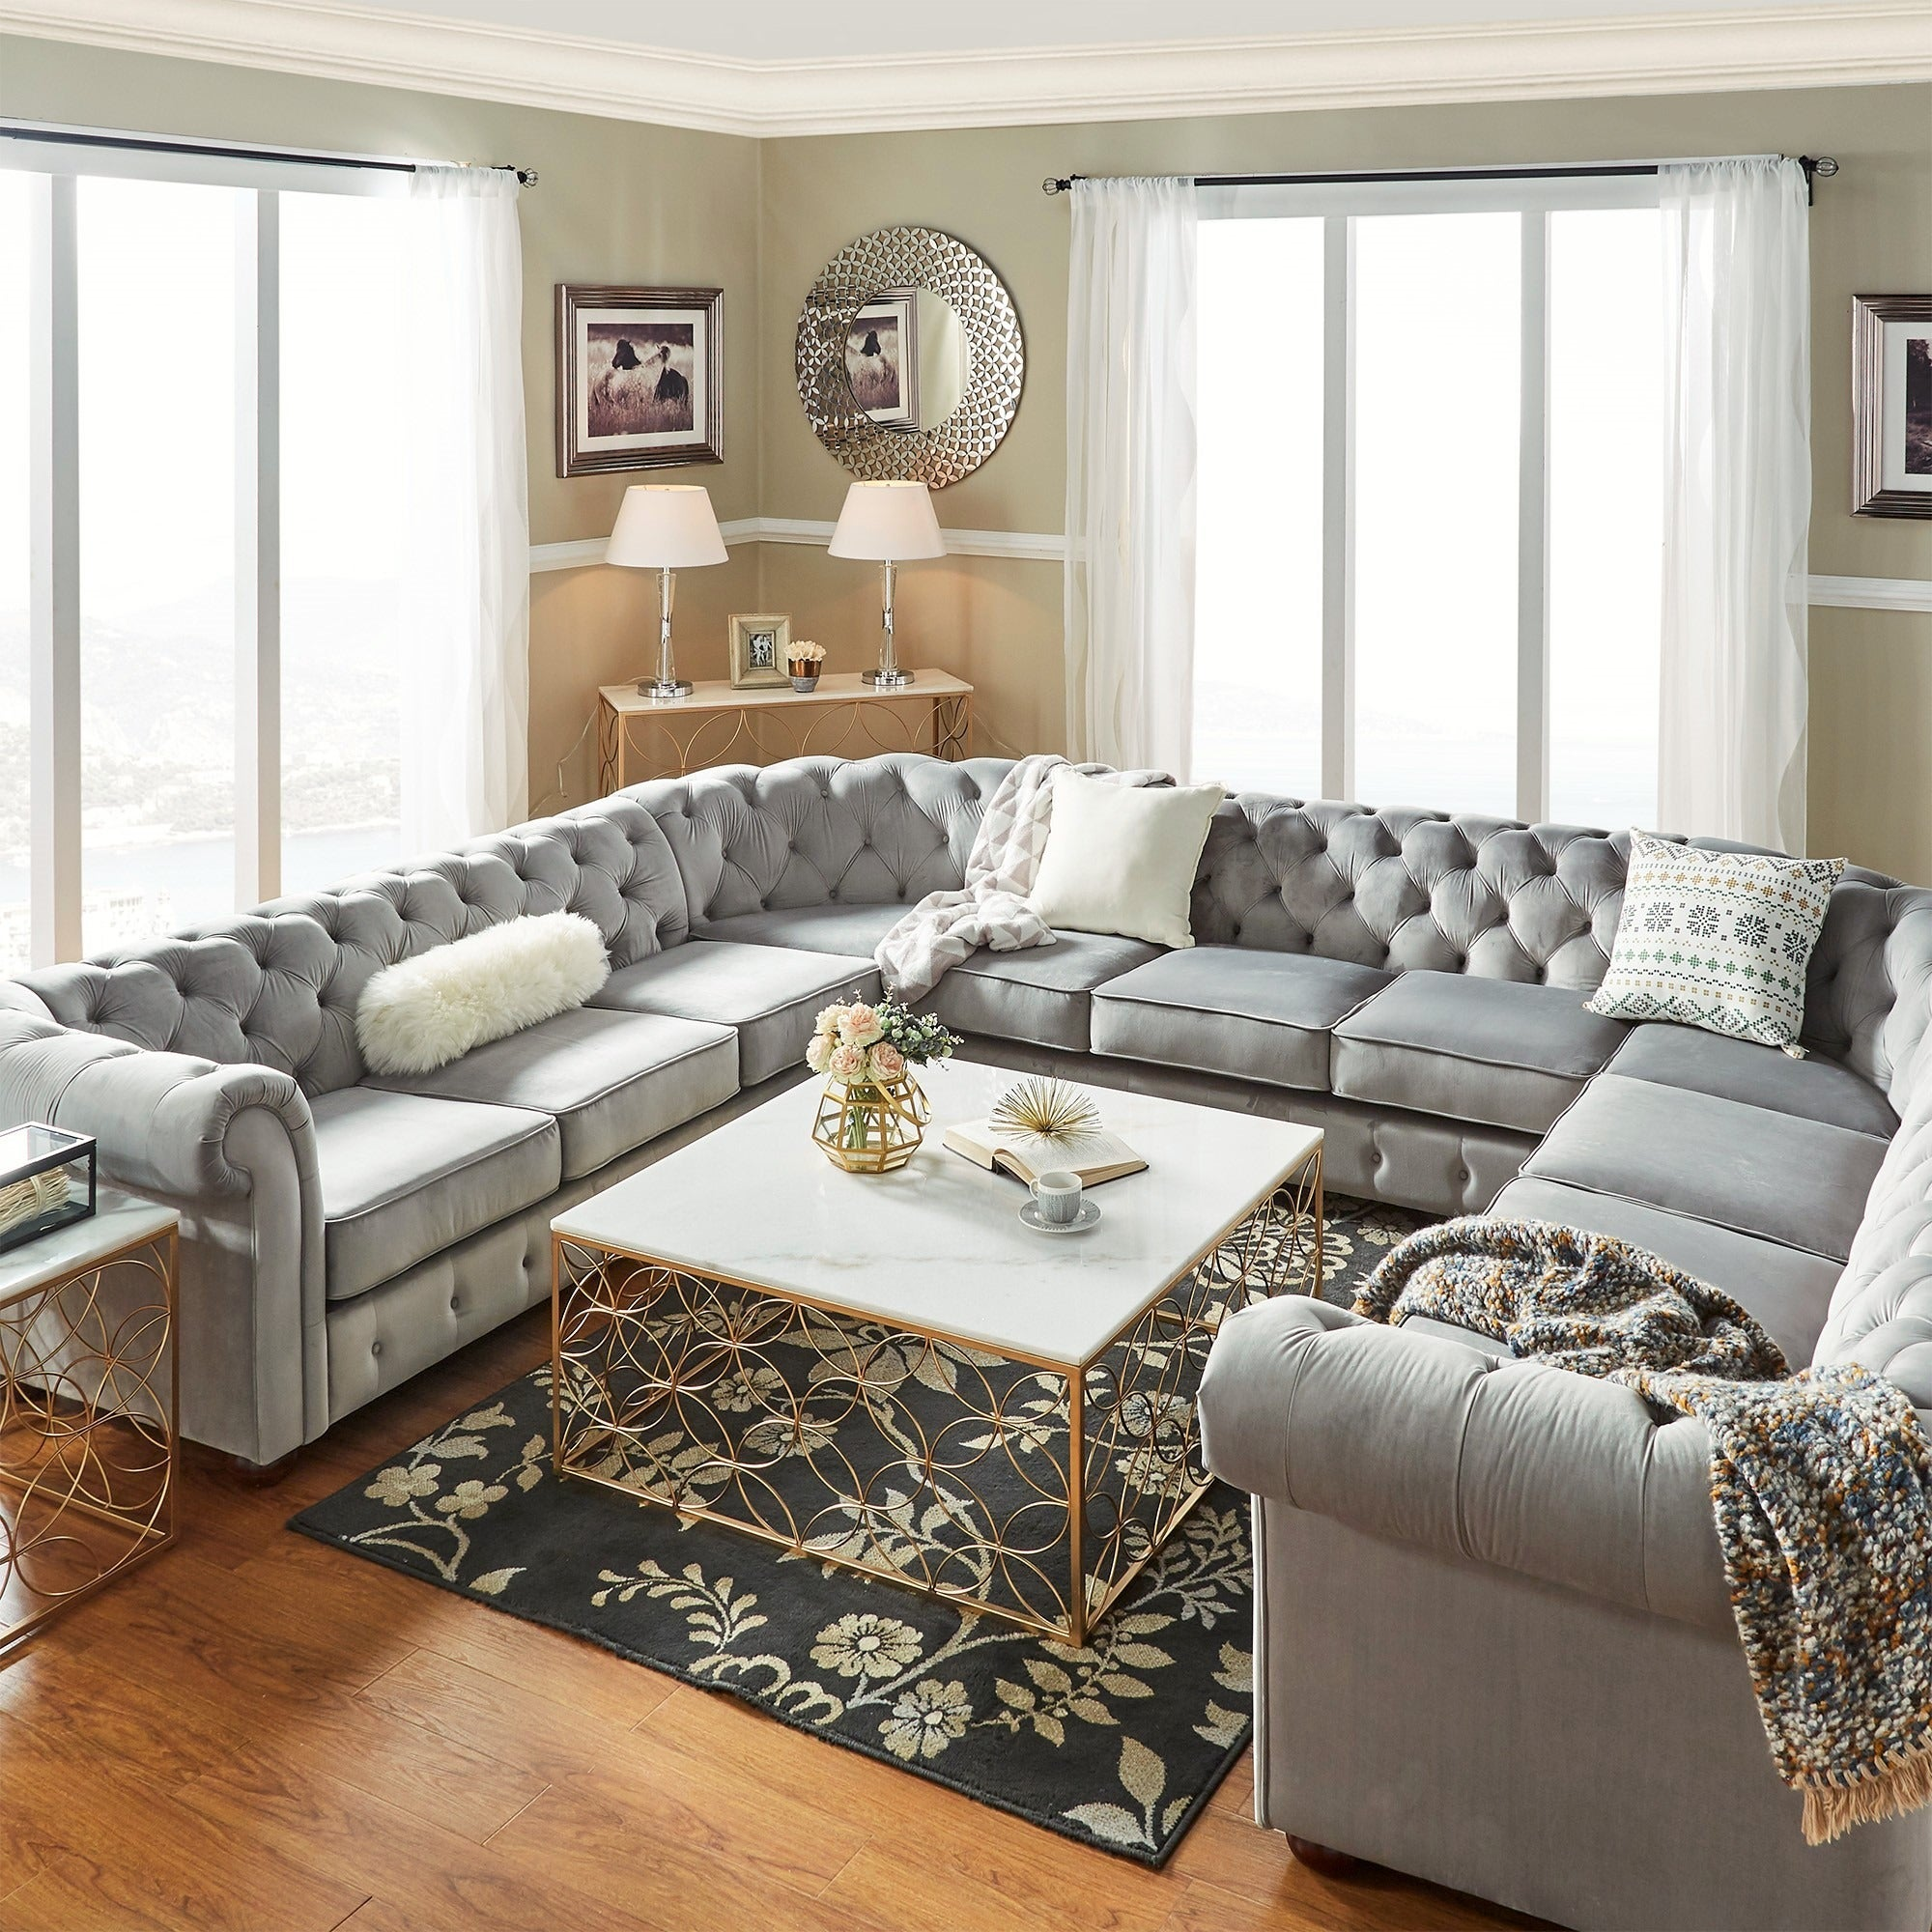 Knightsbridge Tufted Scroll Arm Chesterfield 11 Seat U Shaped Sectional By Inspire Q On Free Shipping Today 11408762